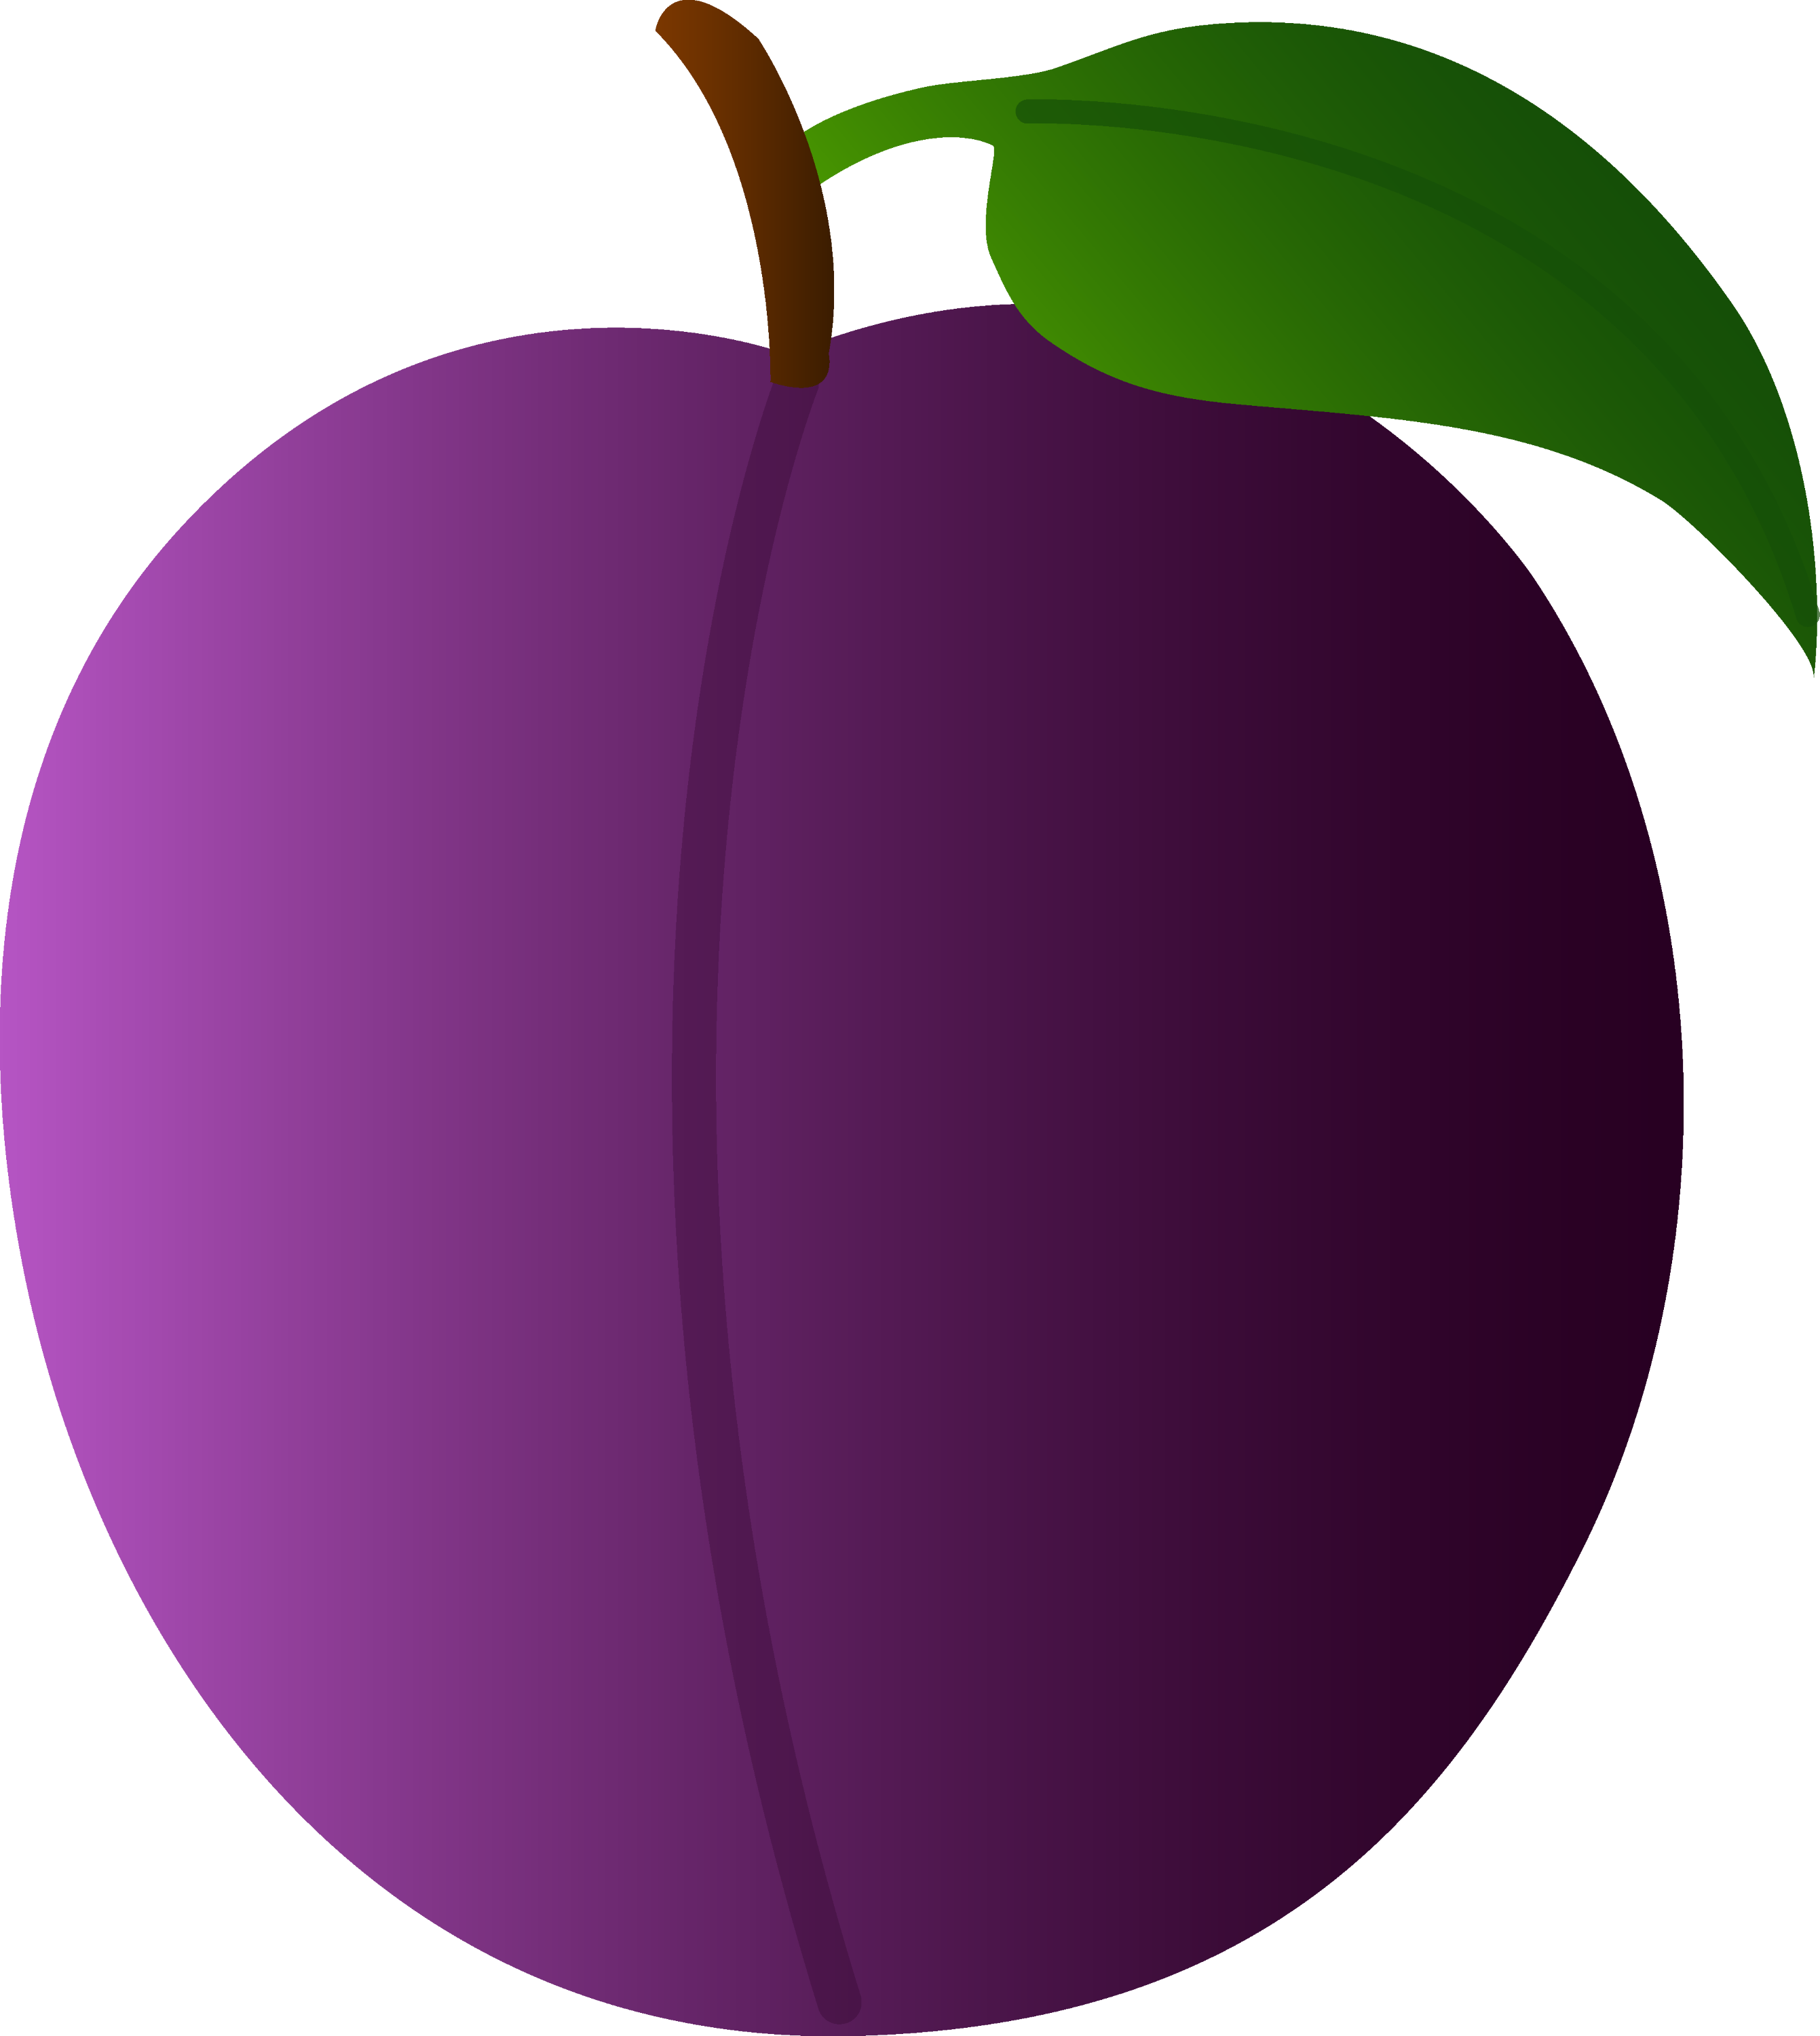 Plum Drawing Sweet purple plum - free clip art